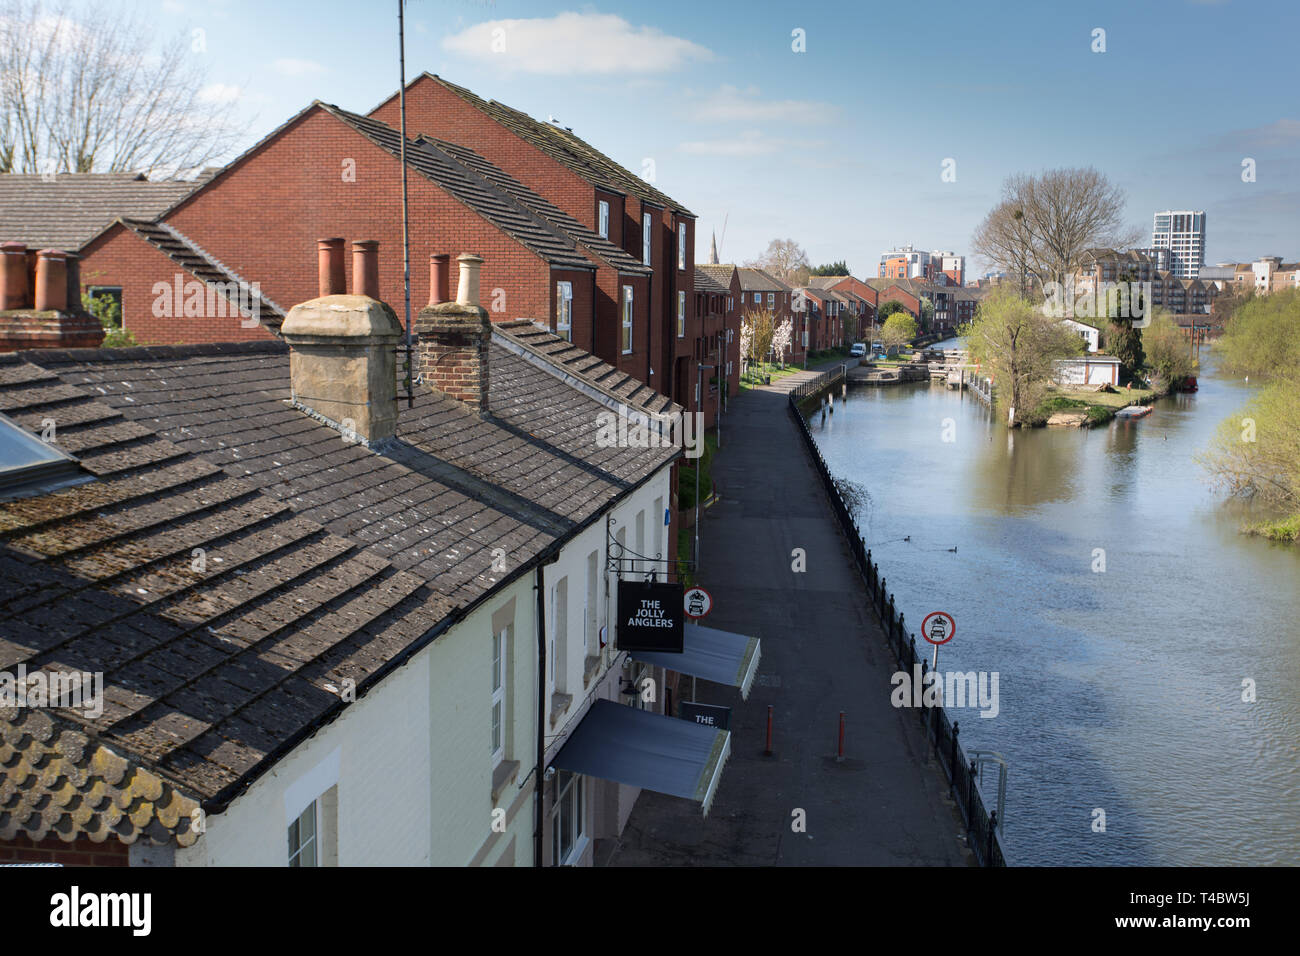 Looking west along River Kennet towards Reading town centre - Stock Image